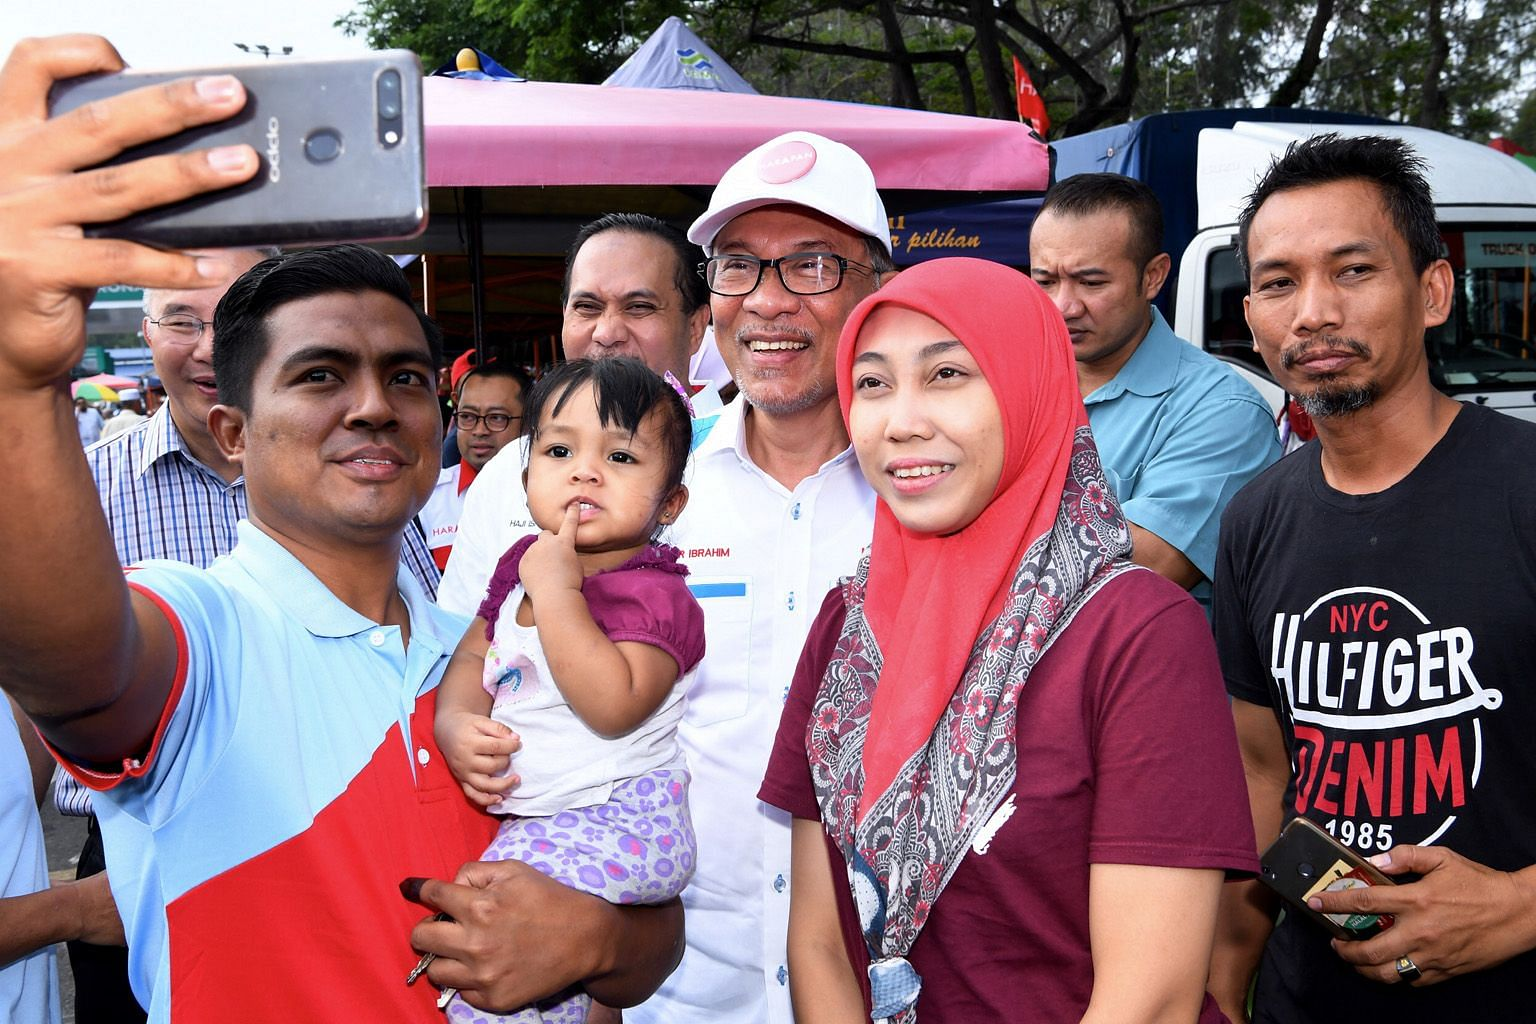 Datuk Seri Anwar Ibrahim (centre) posing for a photo with visitors at the Bagan Pinang Farmers' Market in Port Dickson yesterday. While Mr Anwar's victory in Saturday's by-election in the town is not in question, what will be closely watched is his m